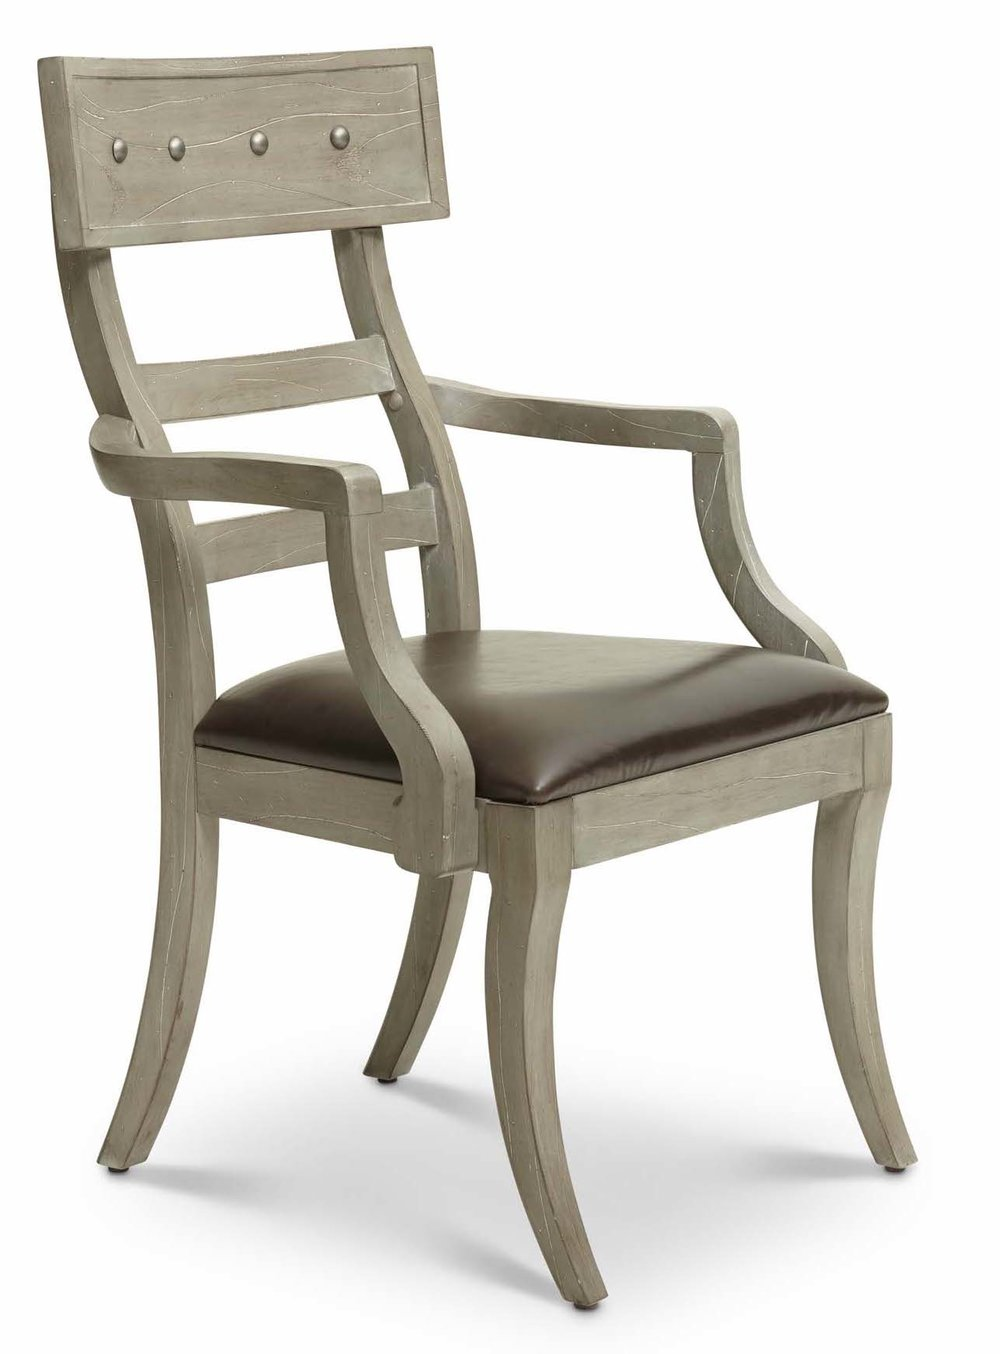 "Aspen Arm Chair  Item # DI-167203 (G / LB / DB) Dimensions: (2/carton) 24.75 x 25 x 41.5""H   Aspen Arm Chair Upholstered Back   (Not Pictured)  Item # DI-167203A Dimensions: 24.75 x 25 x 41.5""H"